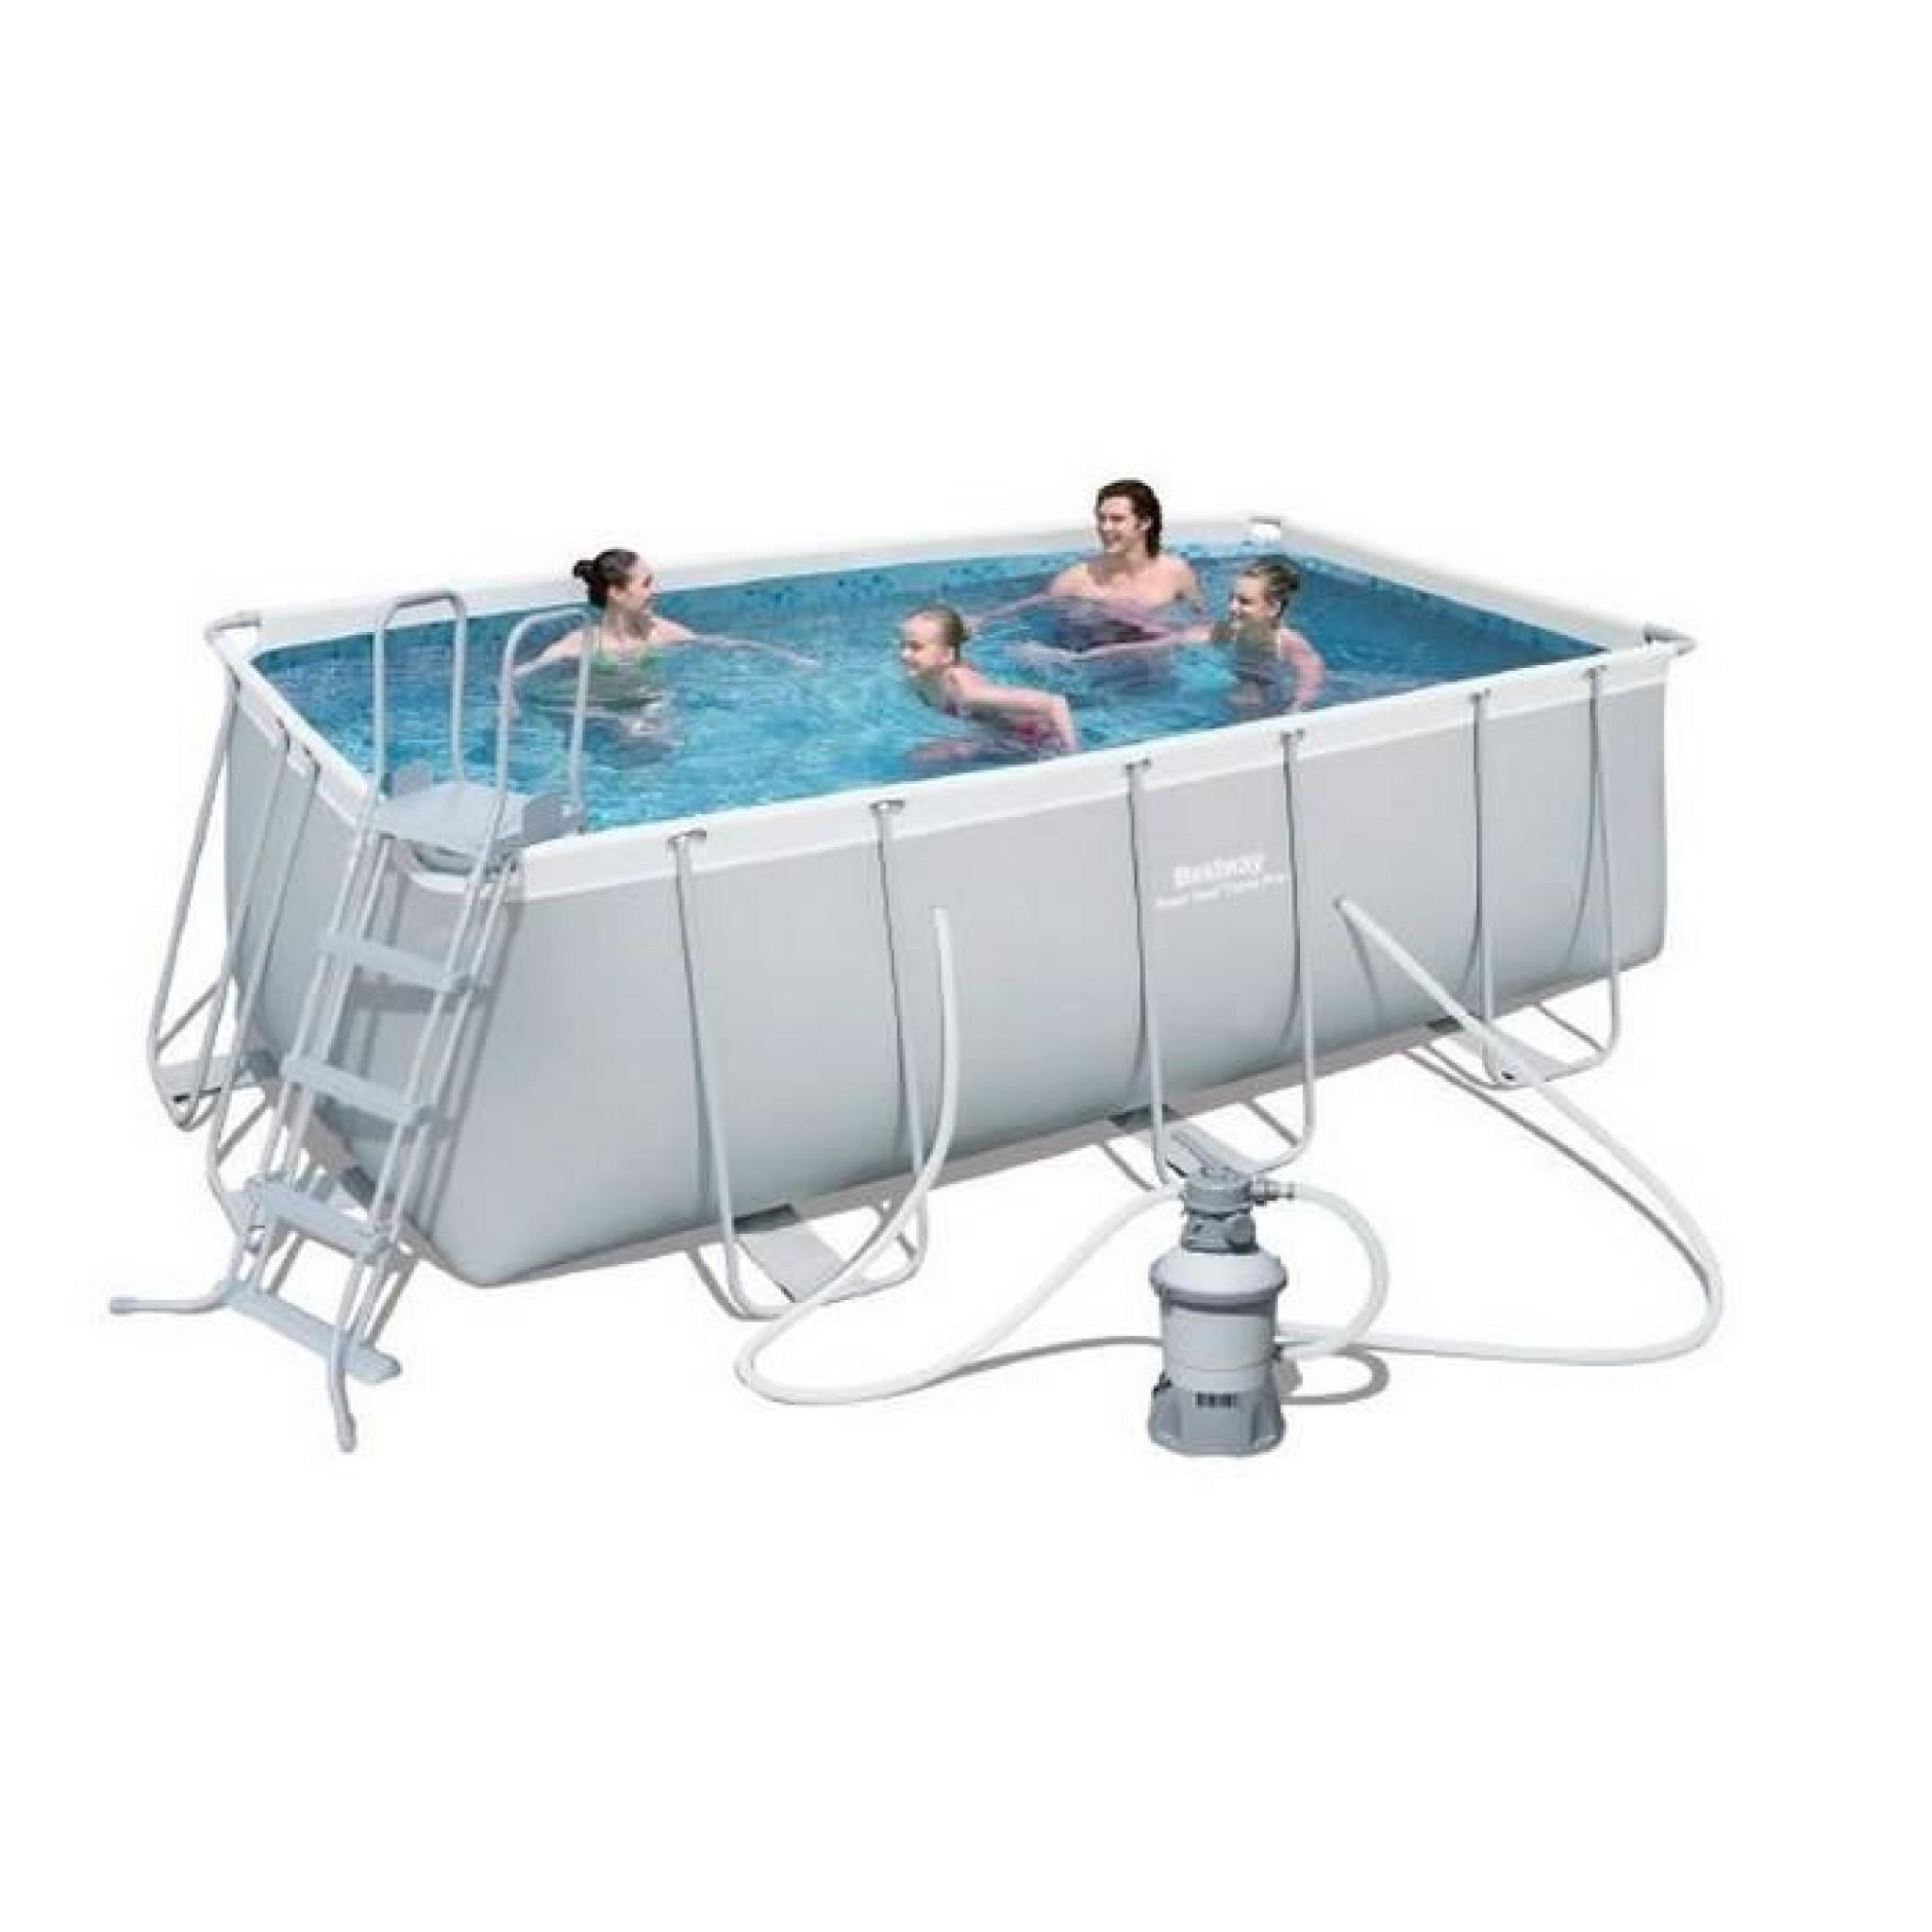 bestway piscine tubulaire rectangulaire filtration cartouche achat vente. Black Bedroom Furniture Sets. Home Design Ideas